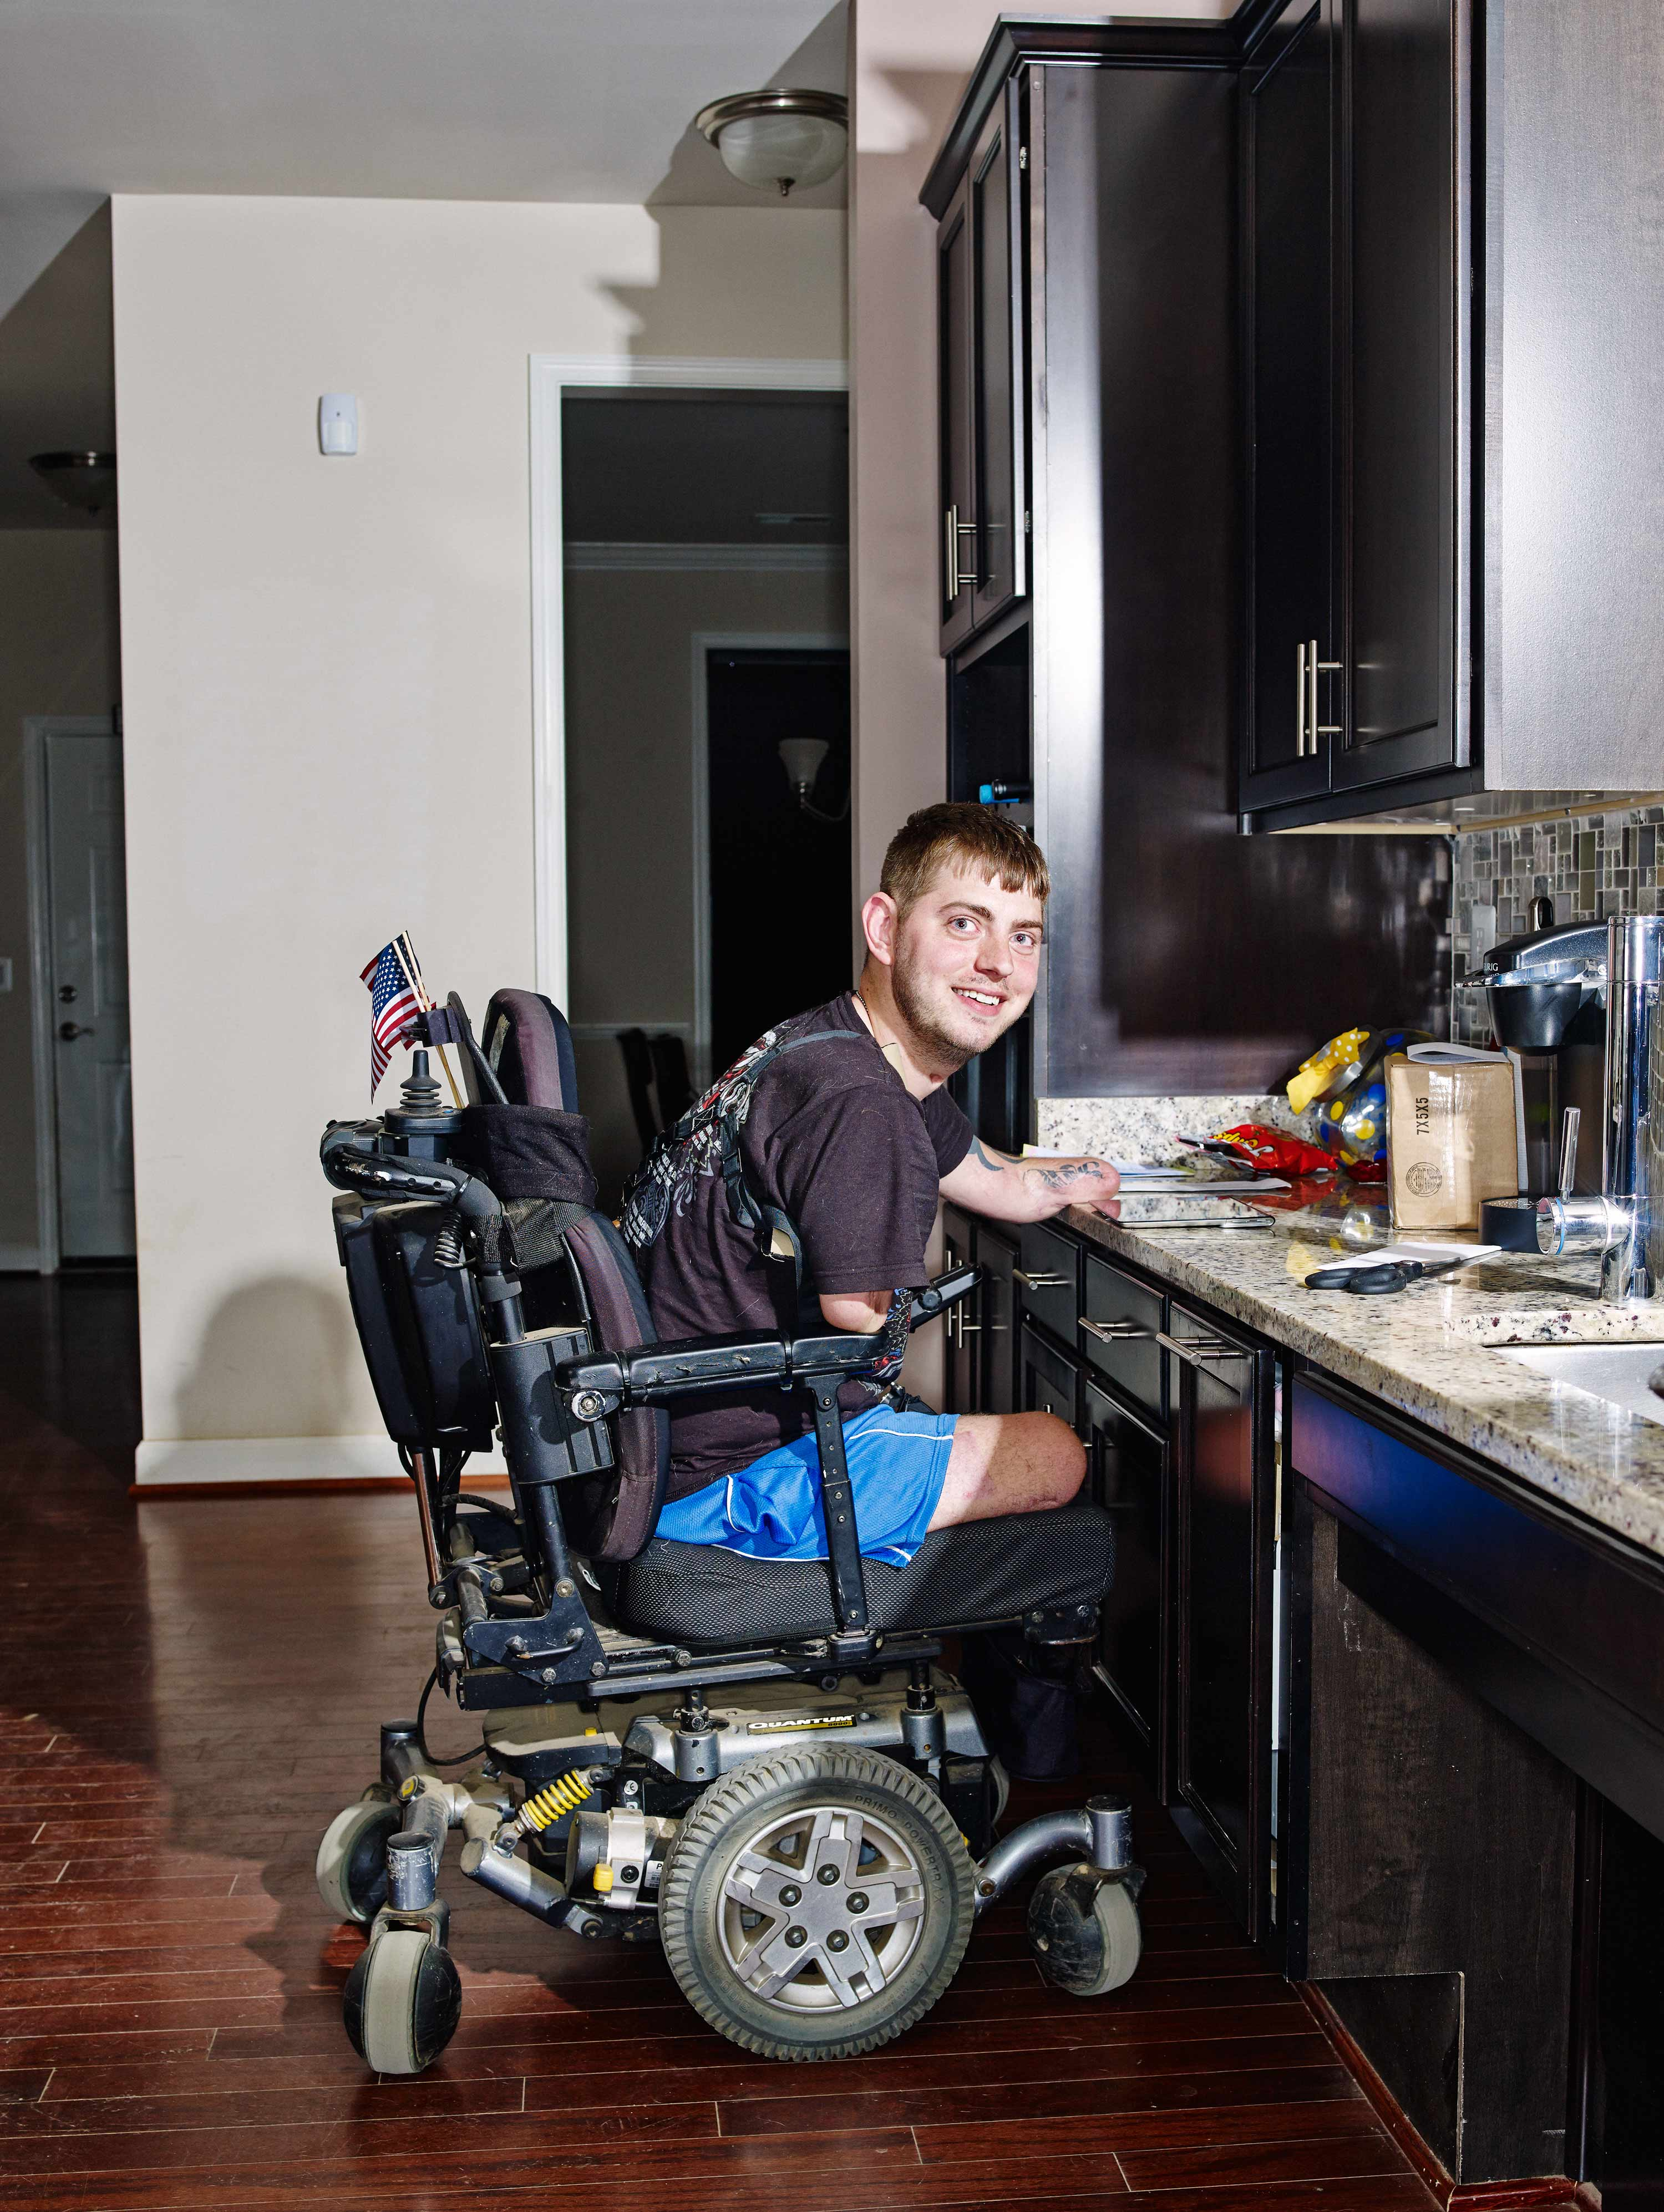 Retired Marine Sergeant John Peck lost all four of his limbs after stepping on IED in Afghanistan in 2010. Today, however, Peck lives in a house built by the Stephen Siller Tunnel to Towers Foundation that was designed to serve his individual needs.